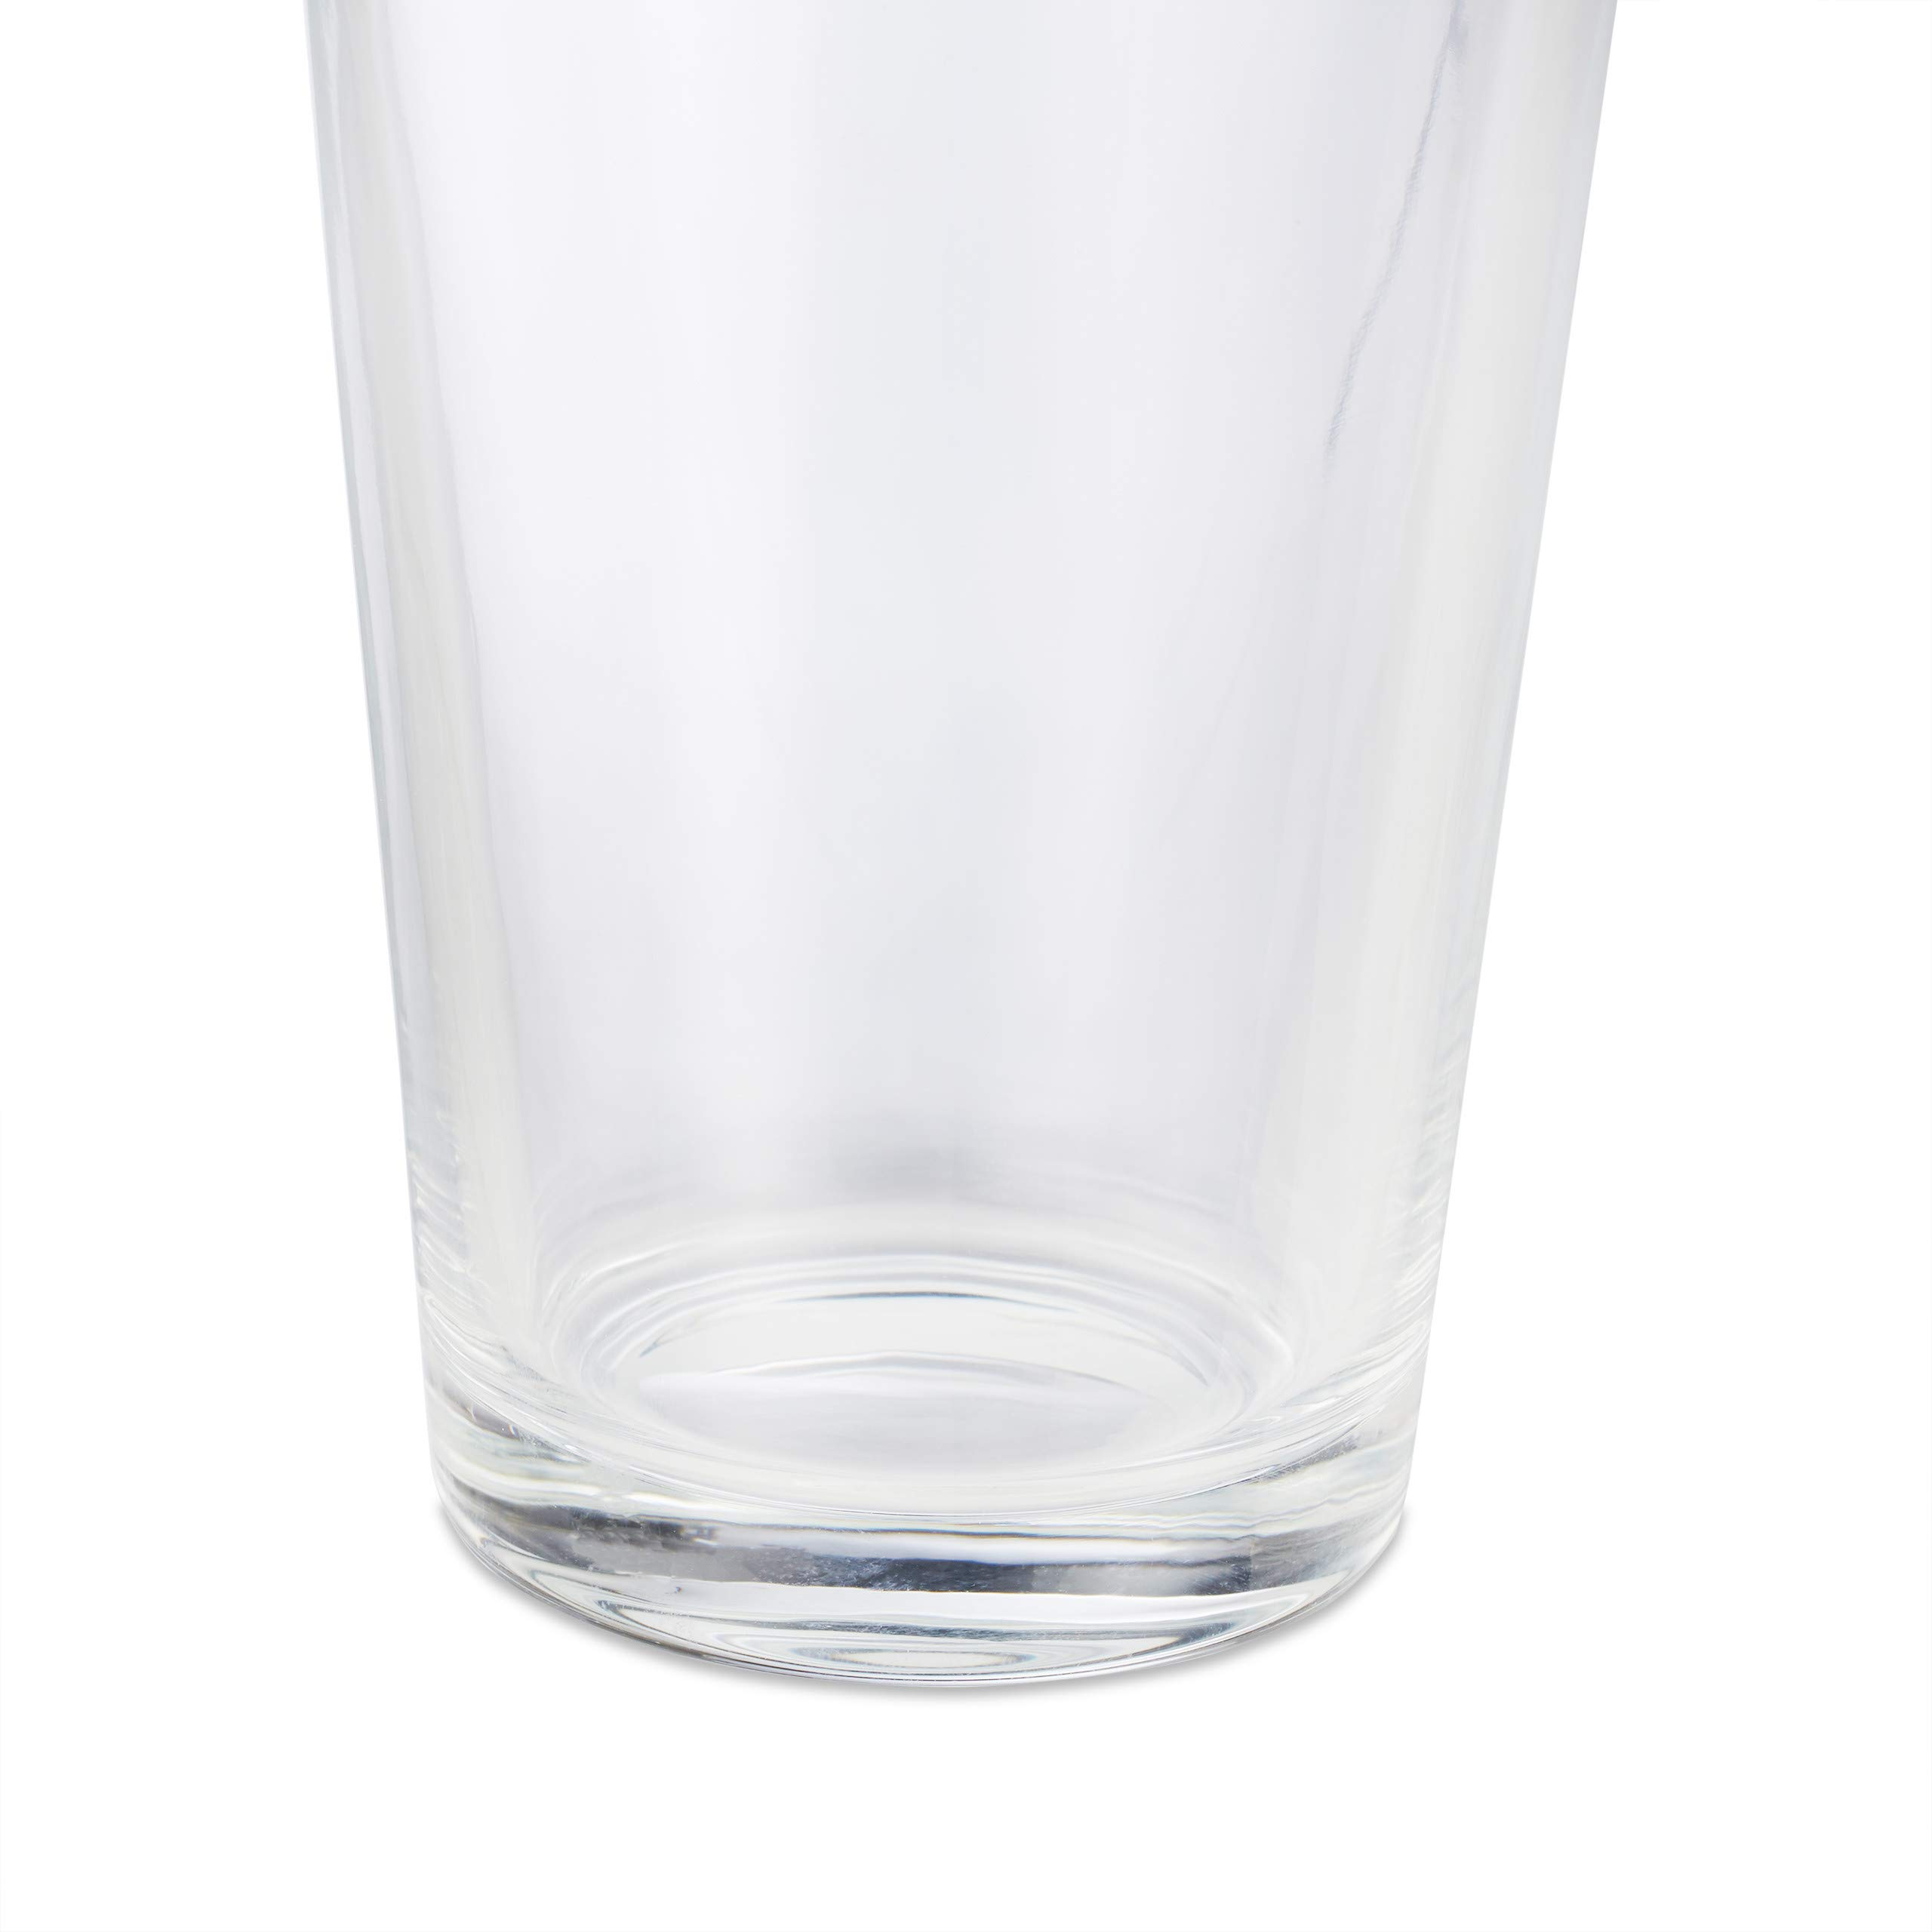 Relaxdays 10023413 Set of 18 Drinking Glasses Thick-Walled Water Glasses Simple Design Dishwasher Safe 500 ml Transparent Glass by Relaxdays (Image #6)